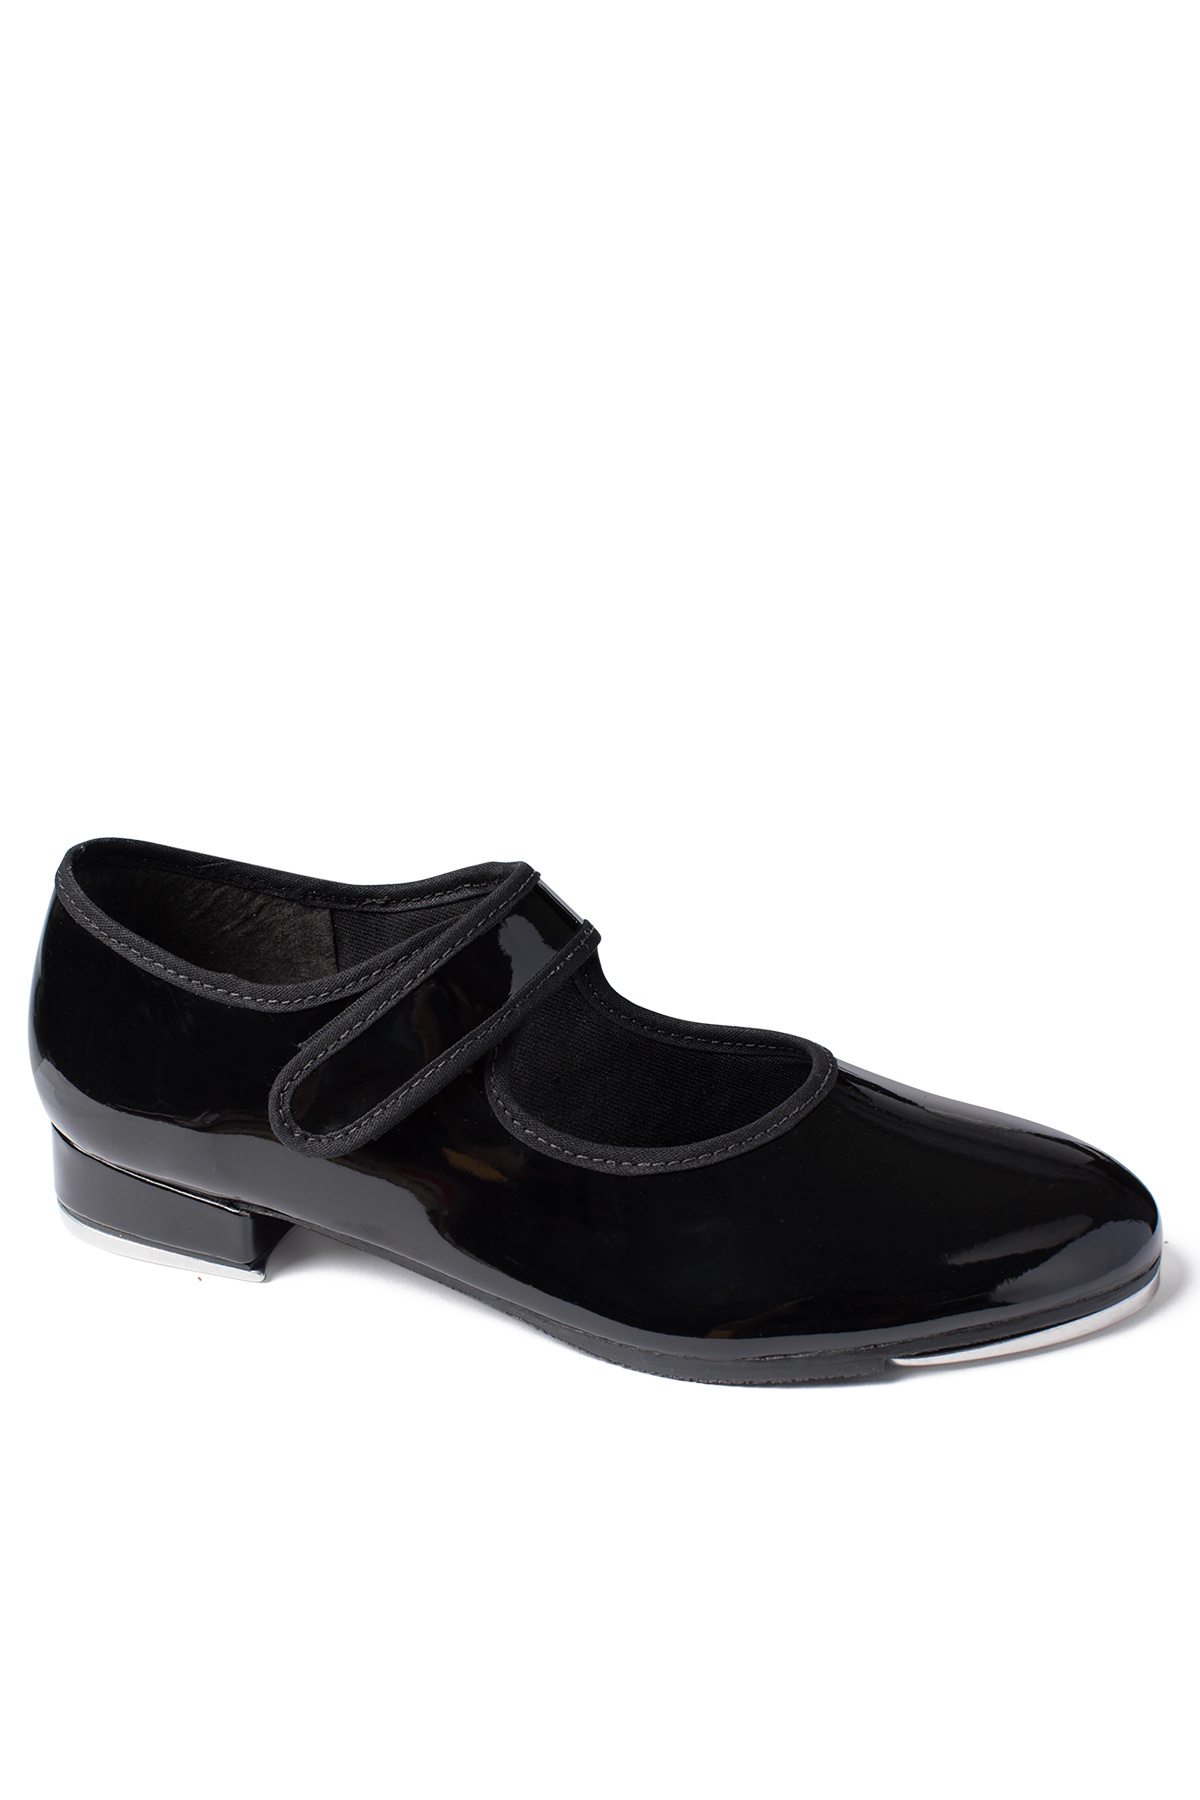 So Danca TA38-TALI- VelcroTap Shoe